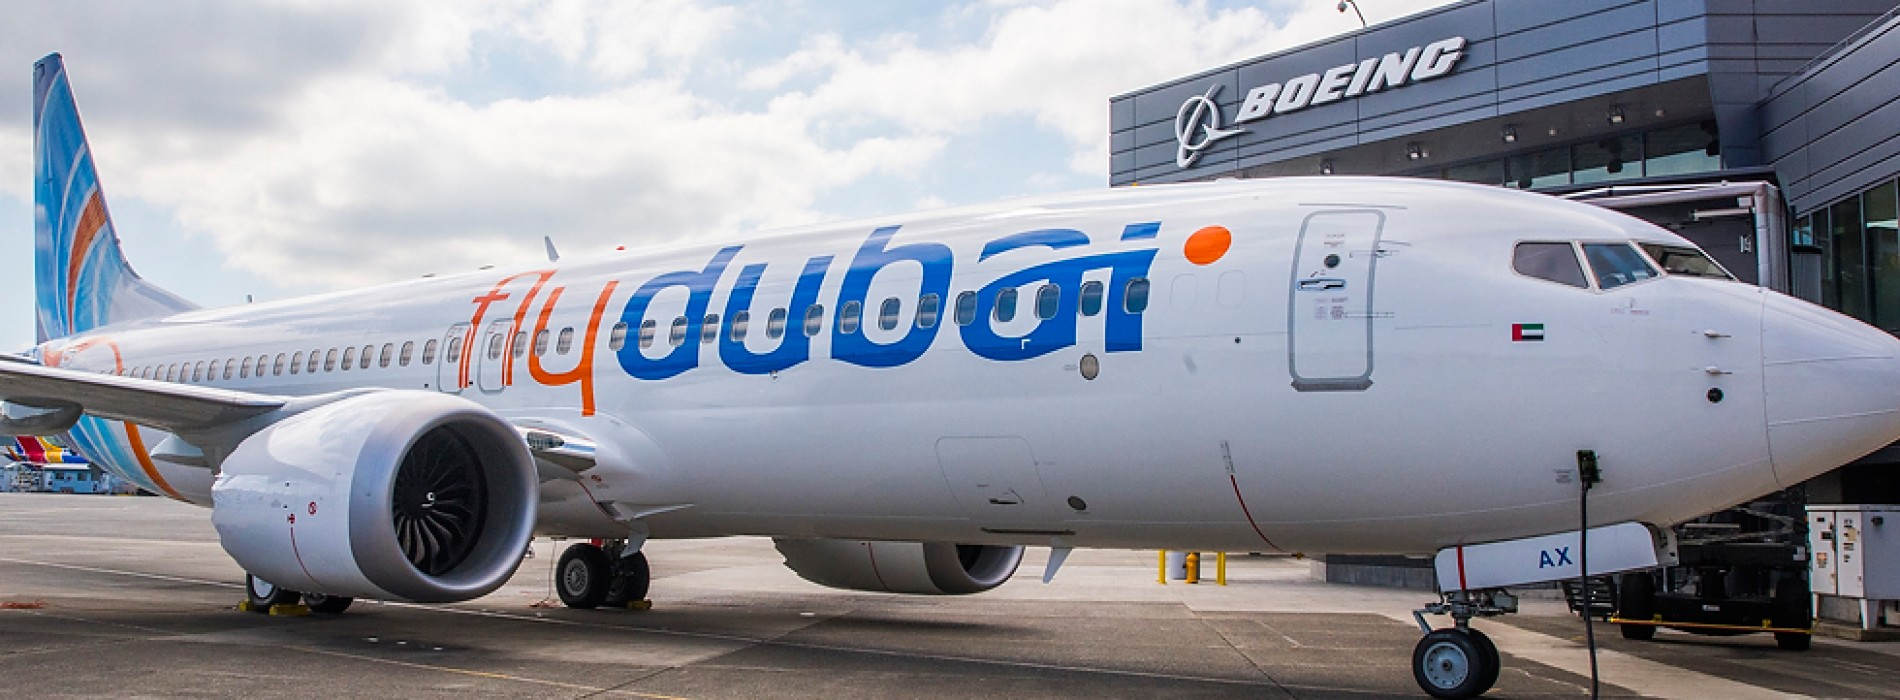 Boeing flydubai Sign Historic Deal for 225 737 MAX Airplanes